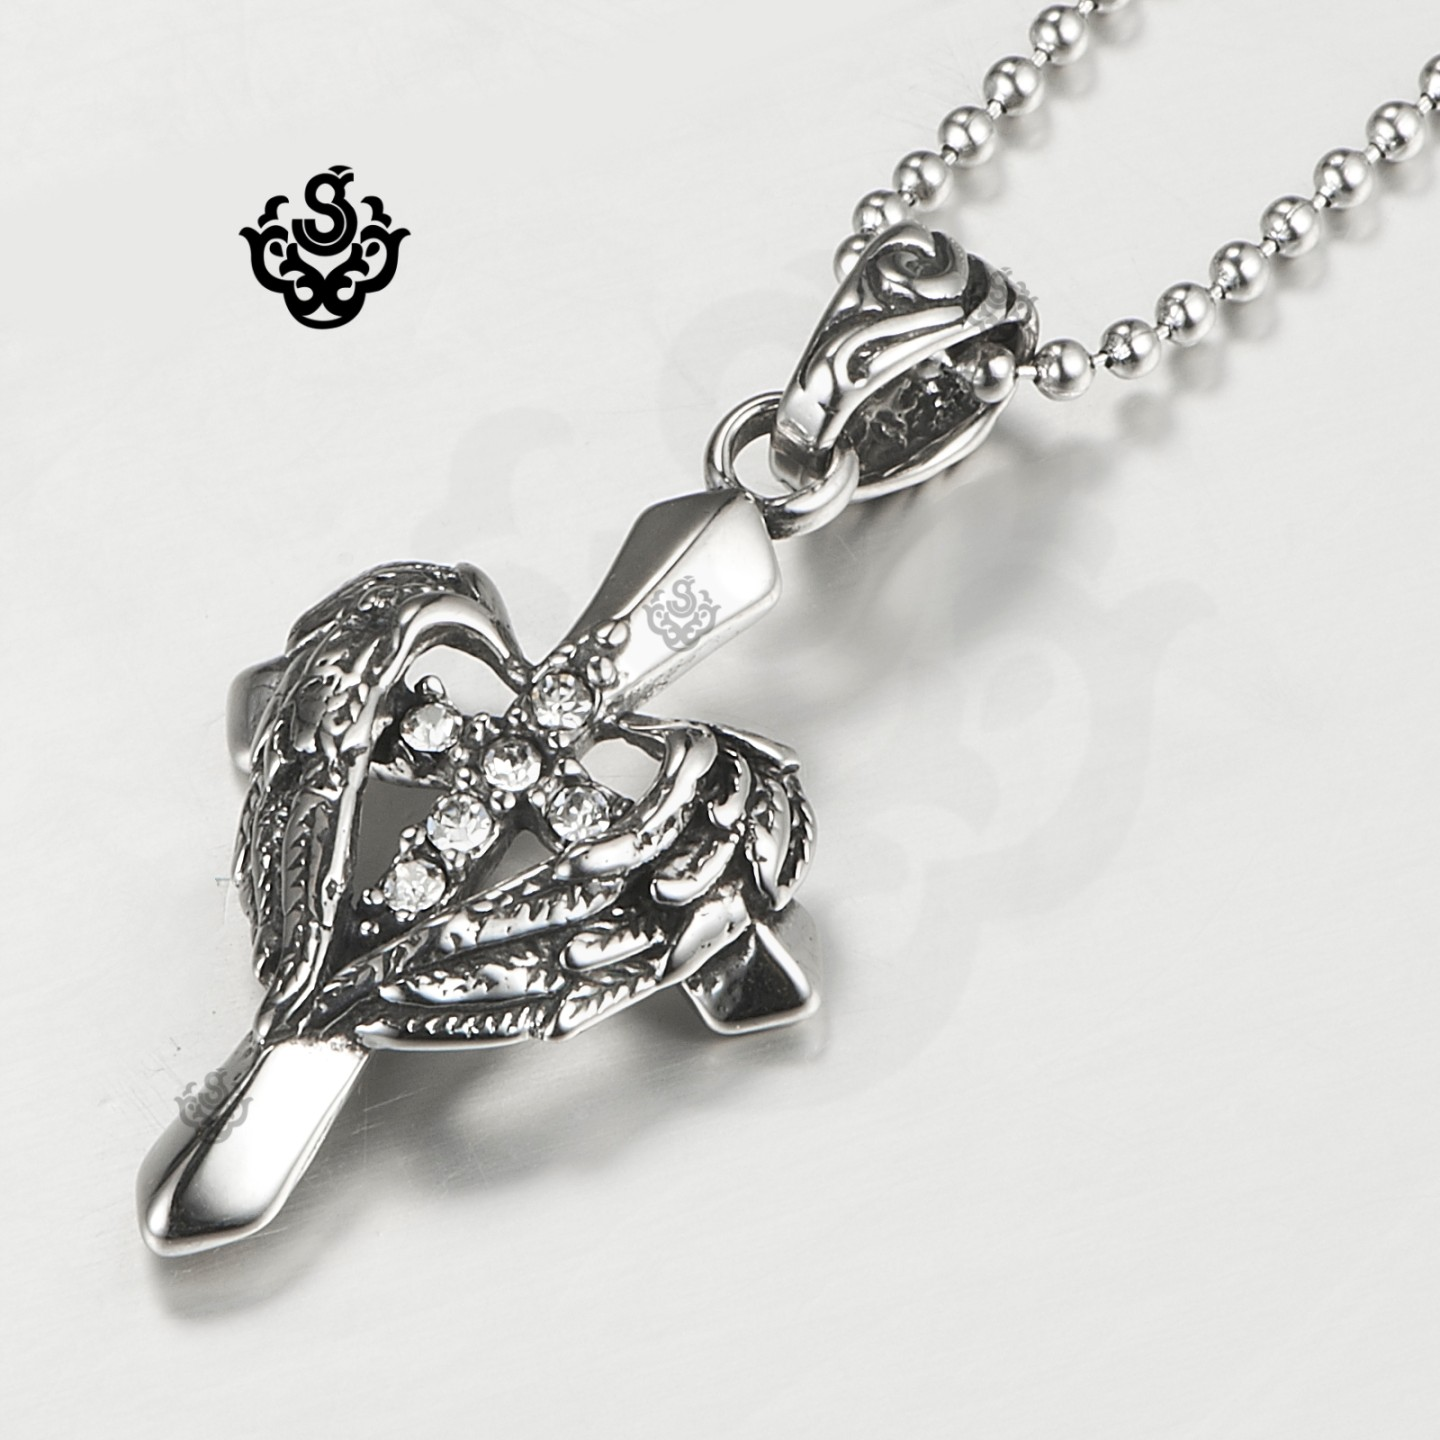 simulated tw w diamonluxe jsp sterling t heart pendant hei floating cross wid necklace op diamond sharpen product prd silver carat